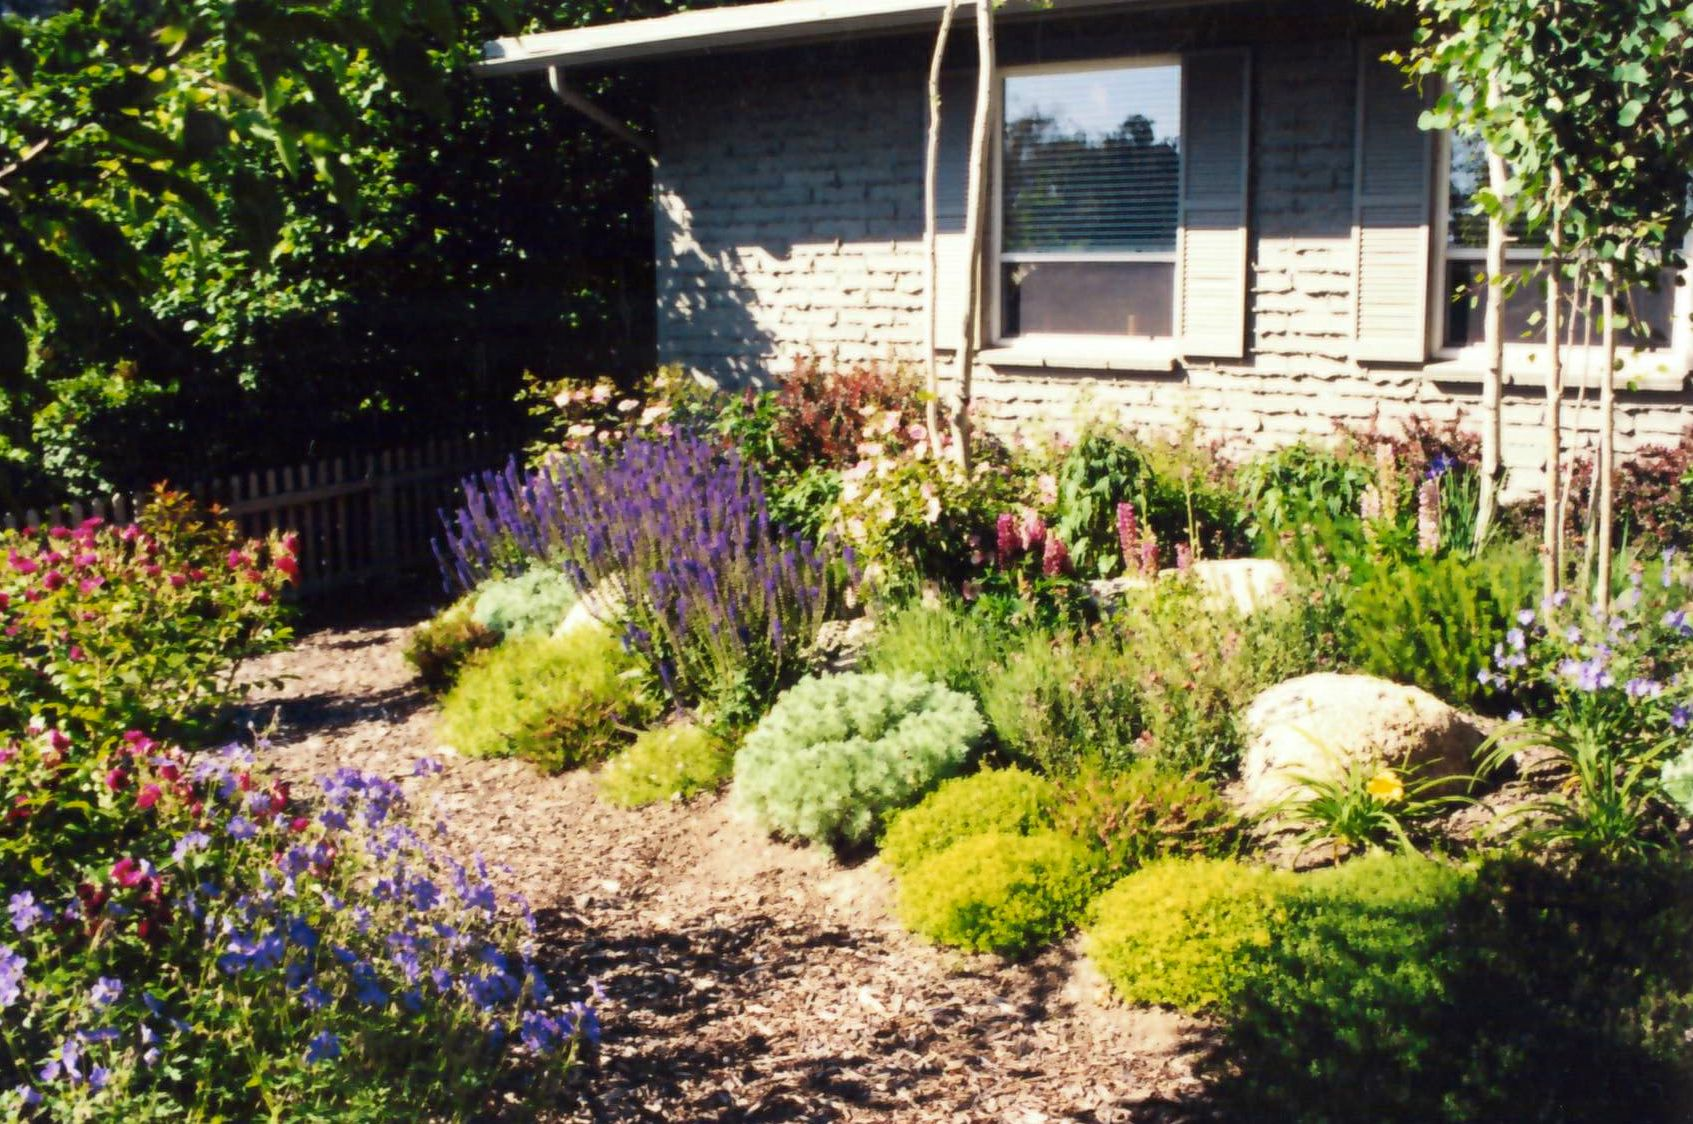 brenda broughton garden design simple cottage style low water use front garden landscape design - Garden Design Cottage Style